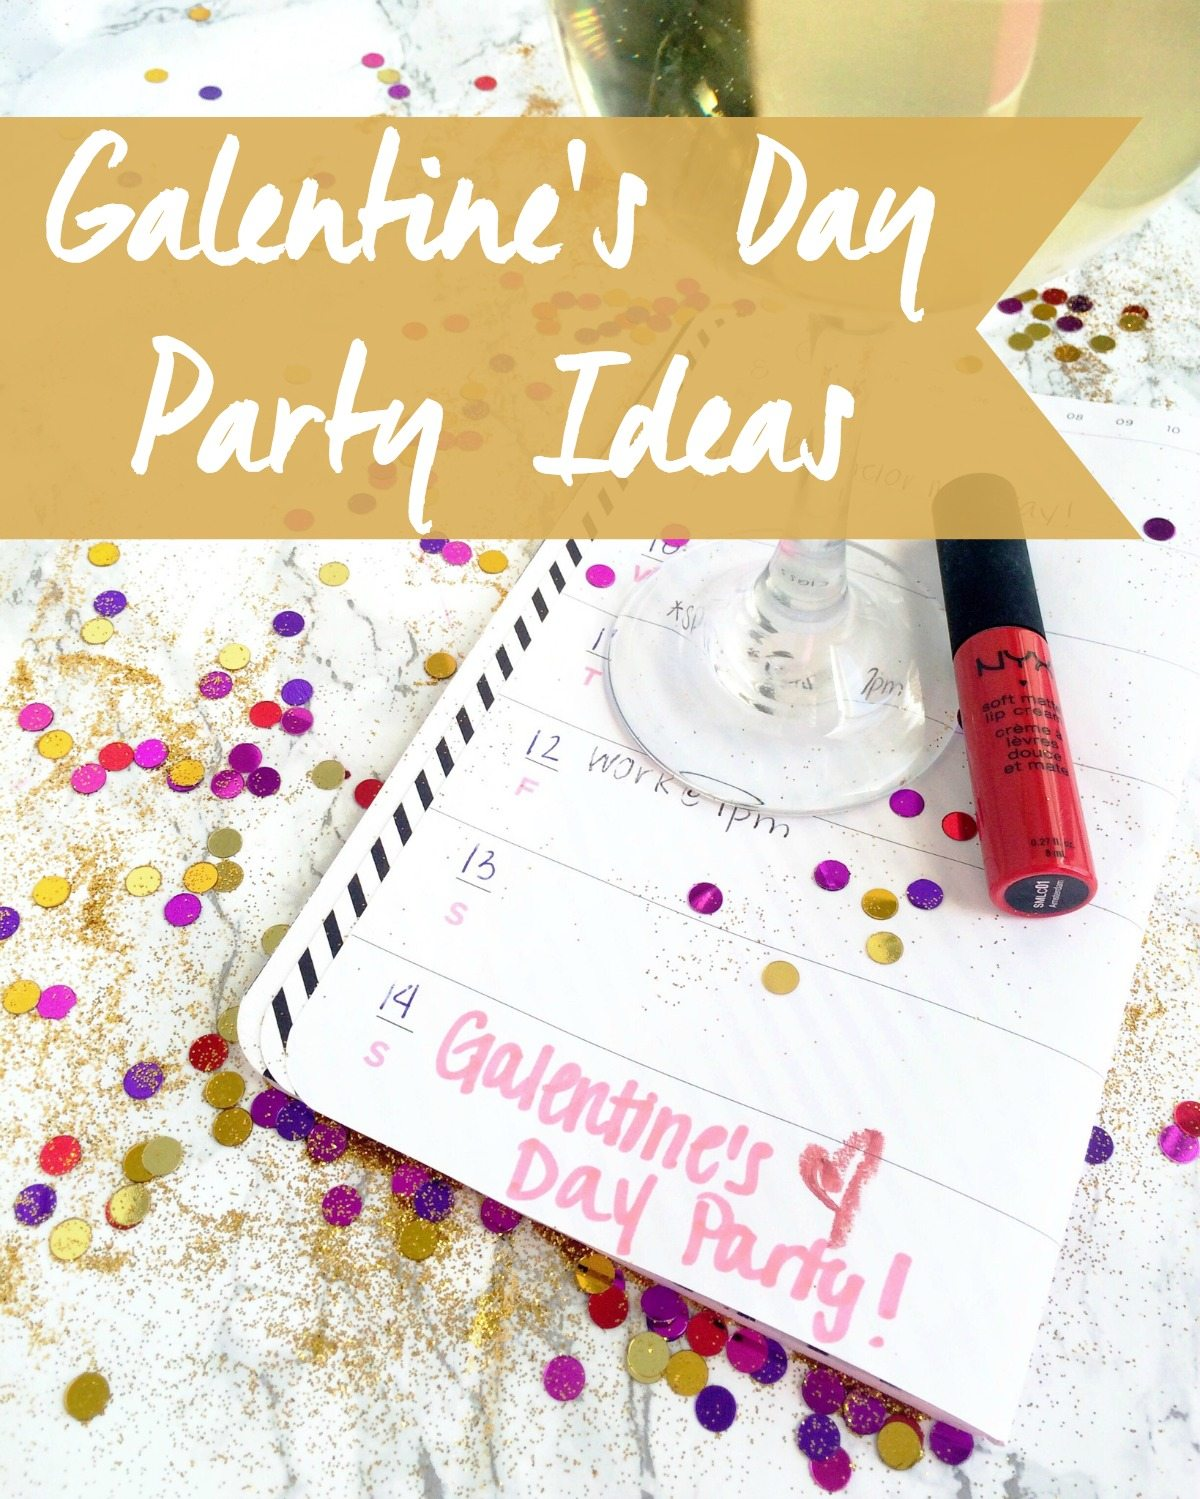 galentine 39 s day party ideas w candidly kelsey elle talk. Black Bedroom Furniture Sets. Home Design Ideas